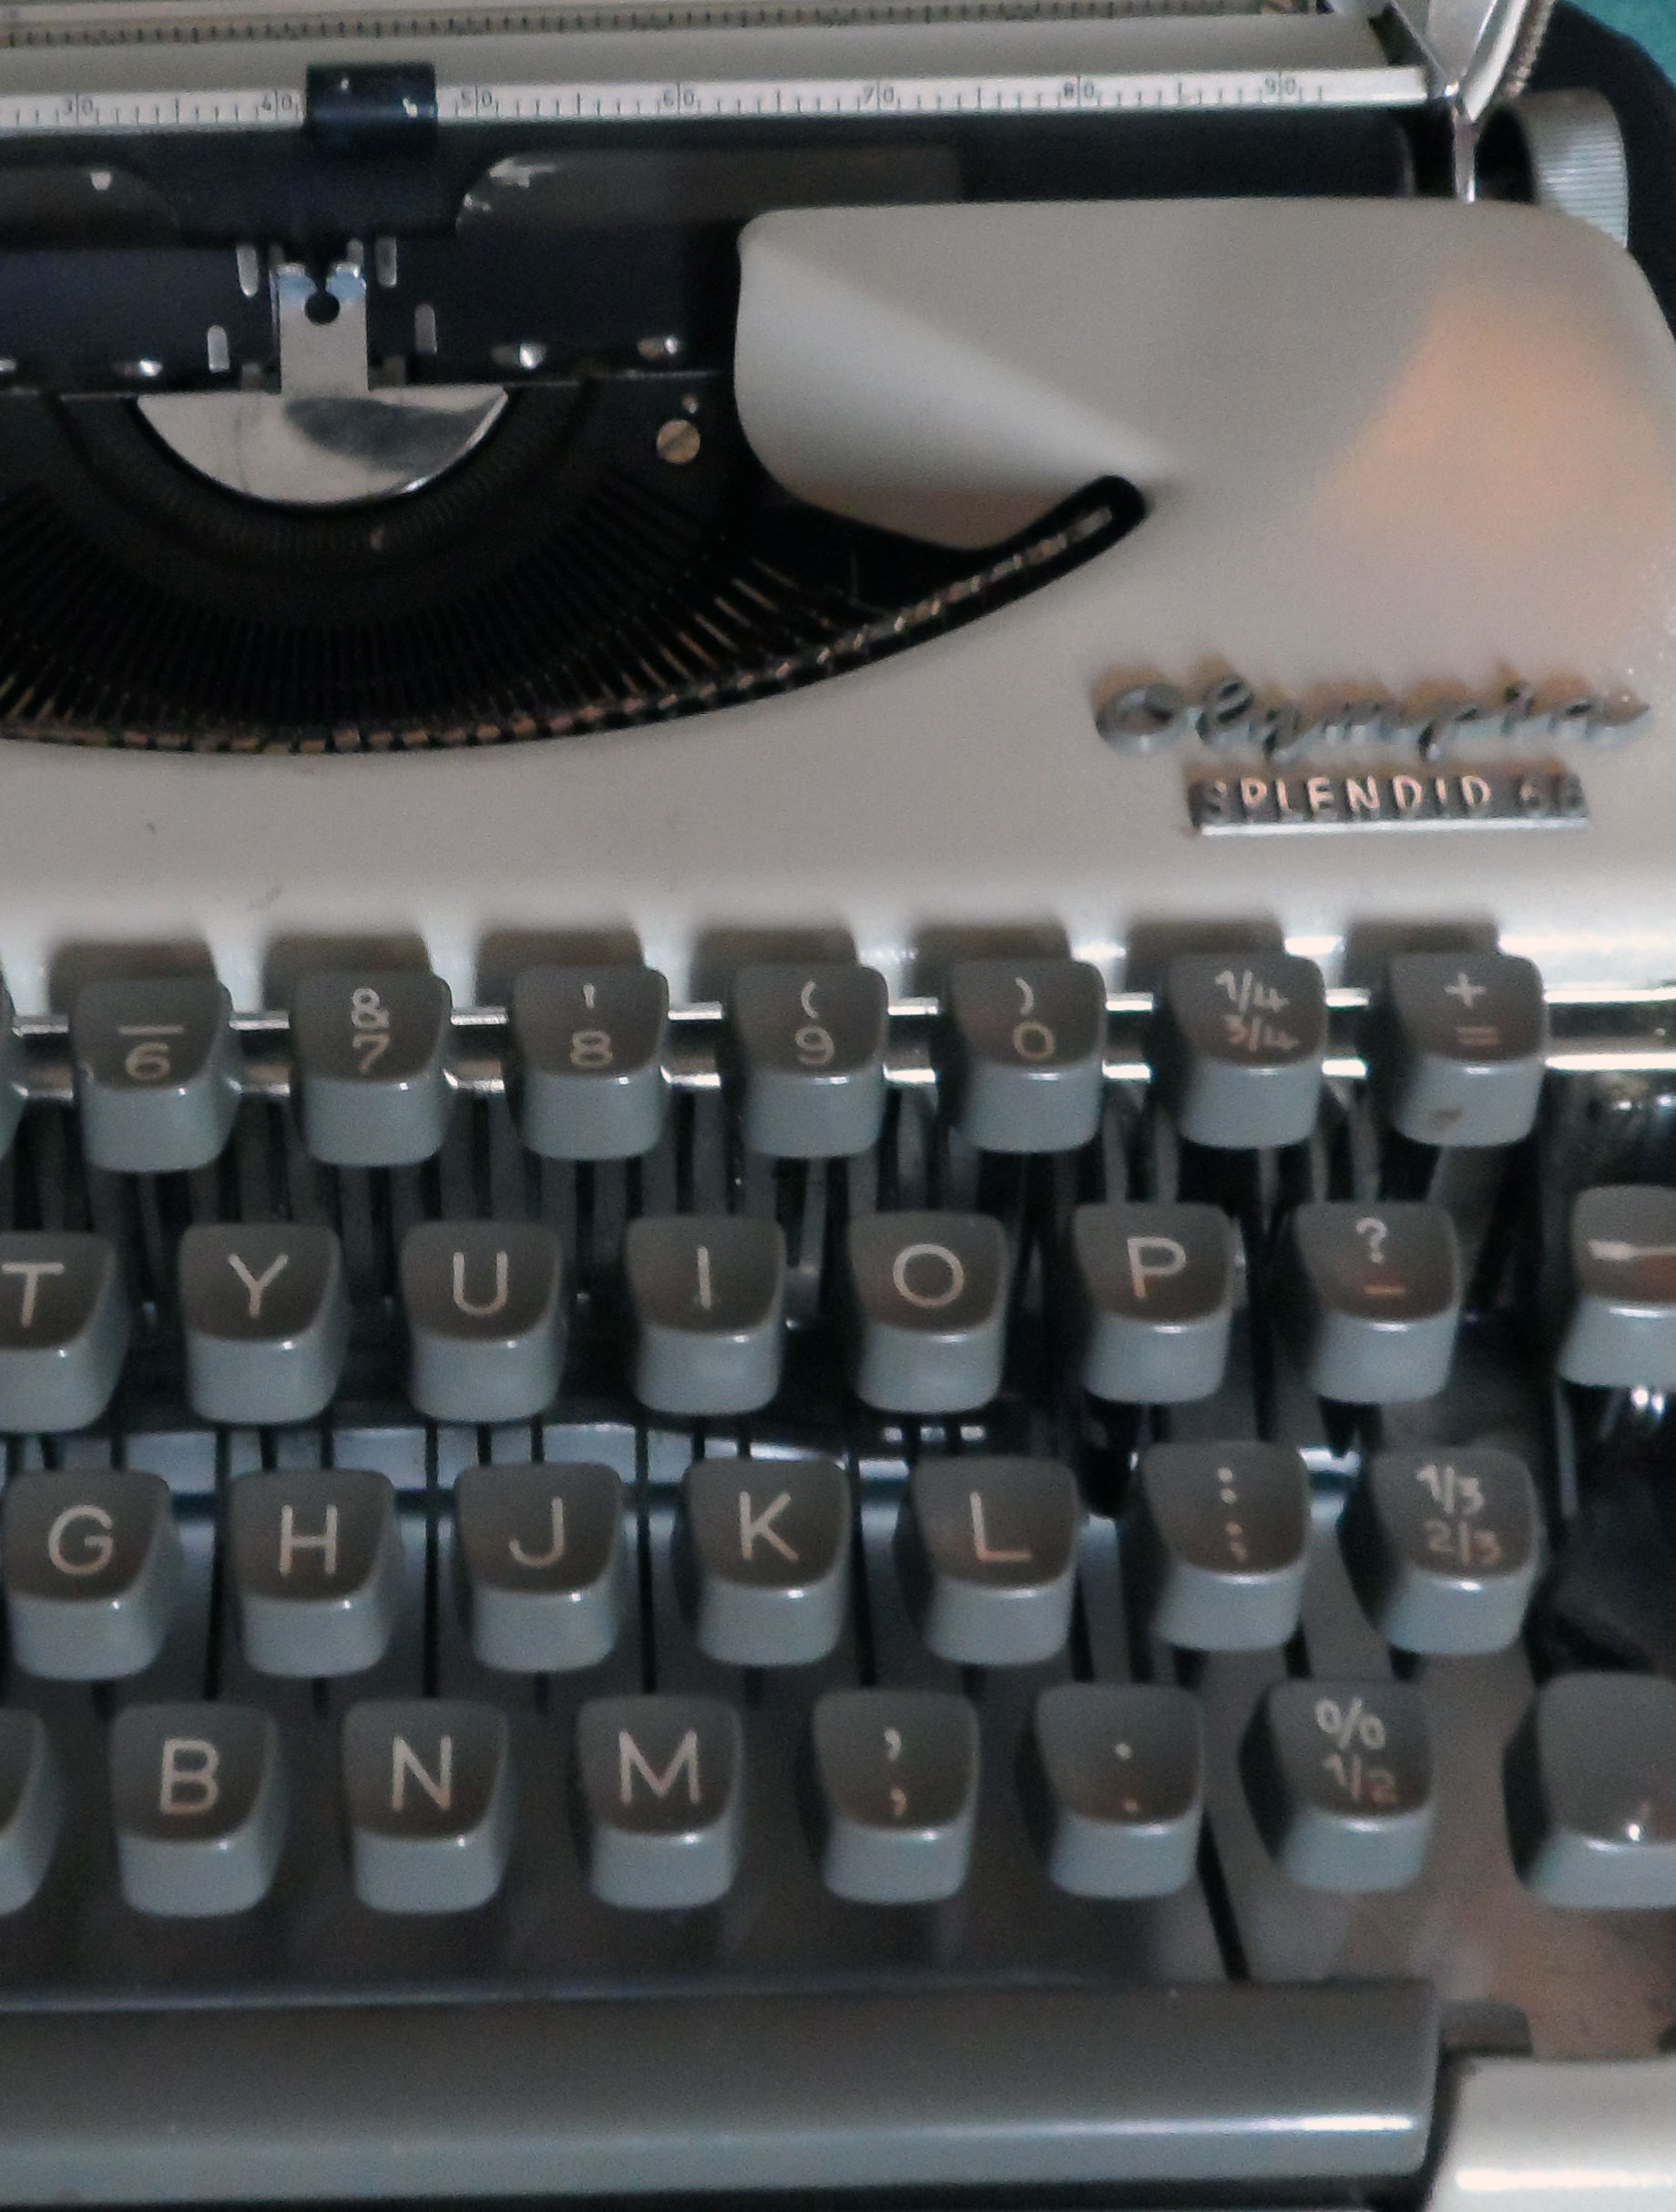 Getting to know your typewriter